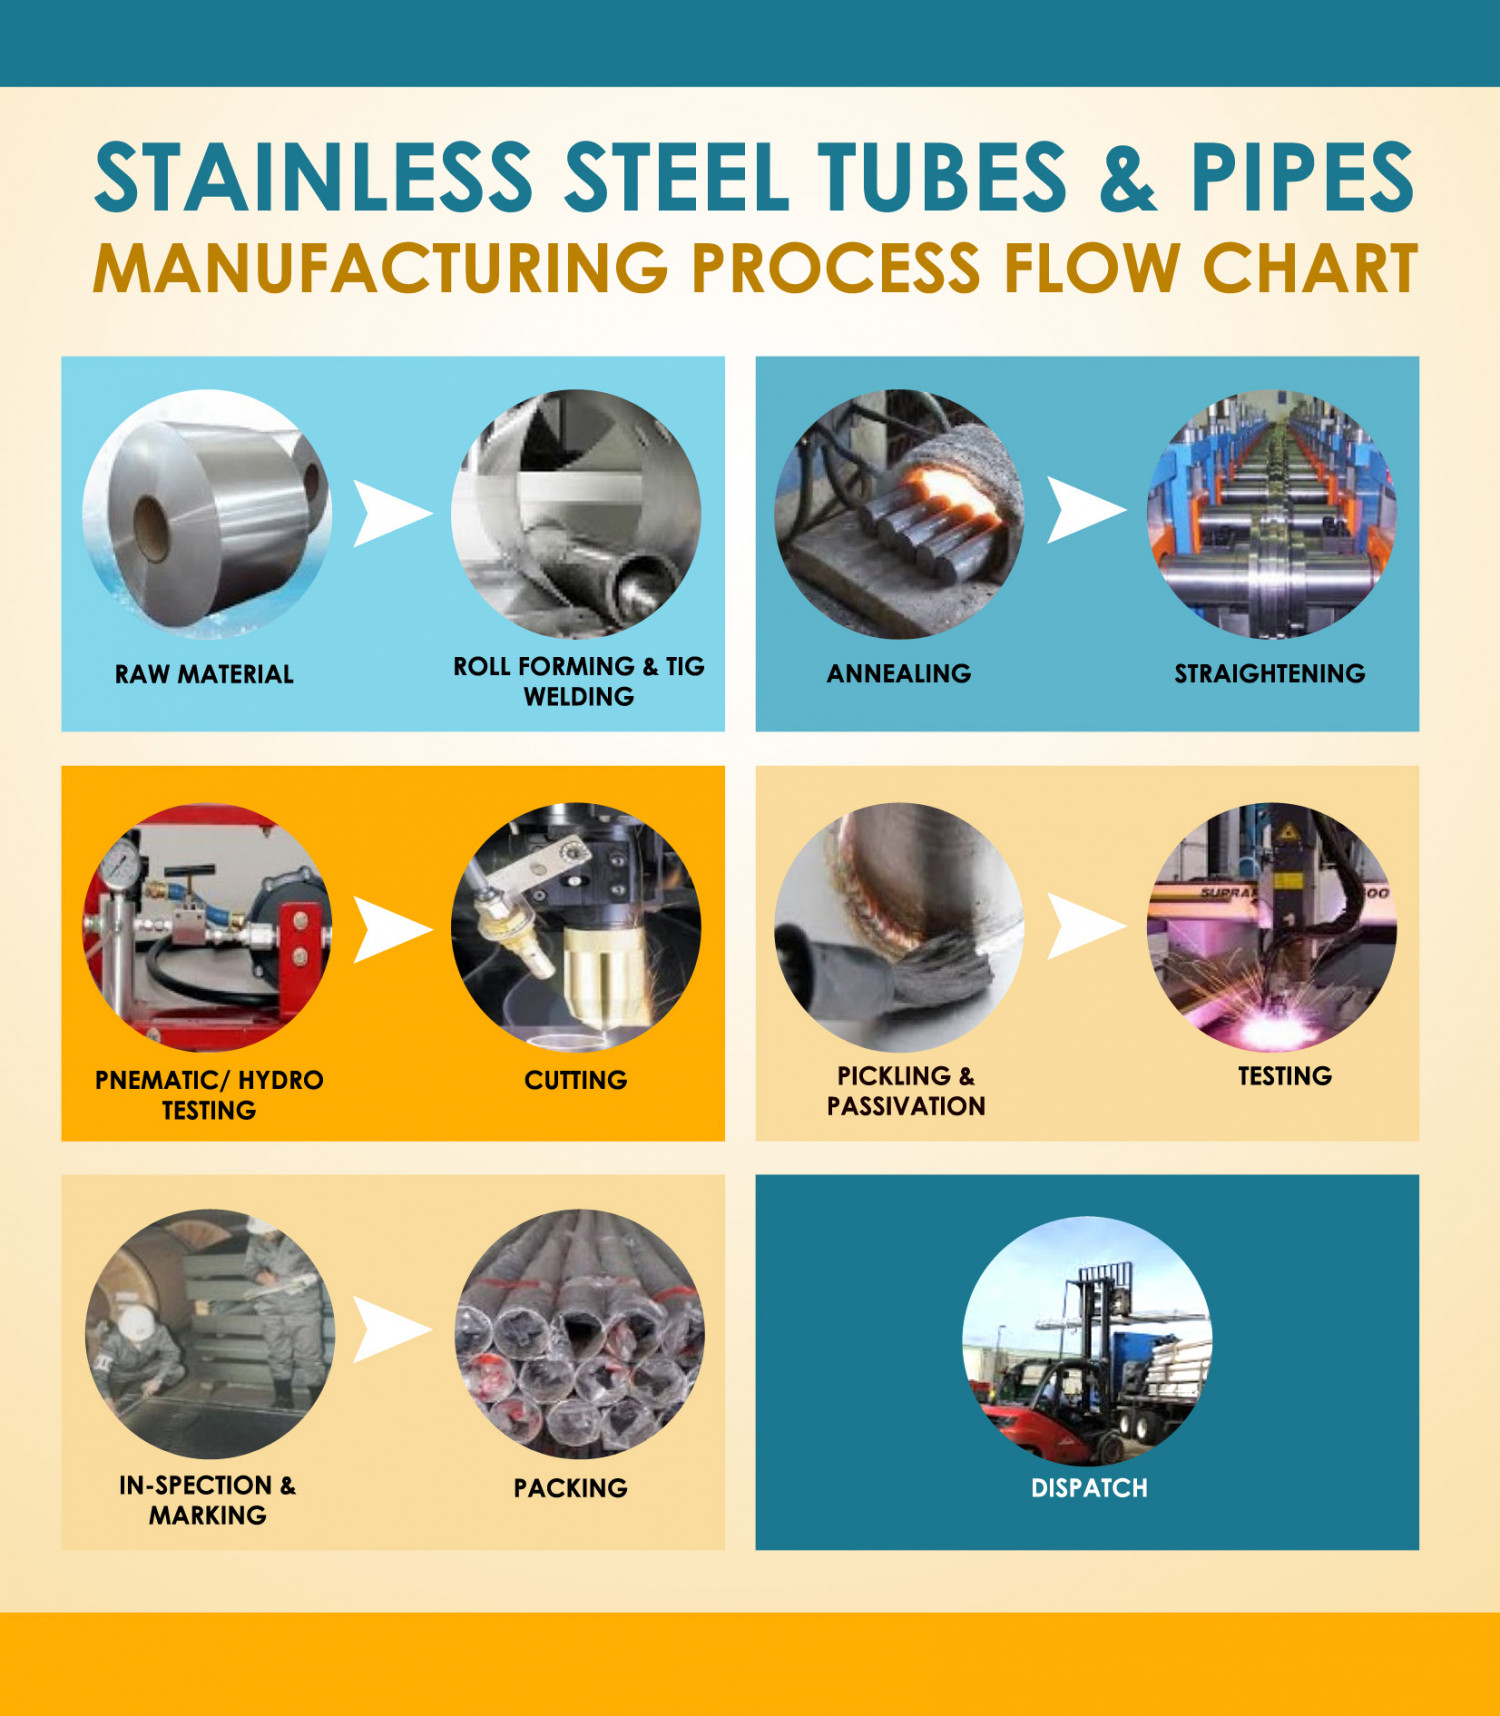 Stainless steel tubes pipes manufacturing process flow chart stainless steel tubes pipes manufacturing process flow chart infographic nvjuhfo Gallery